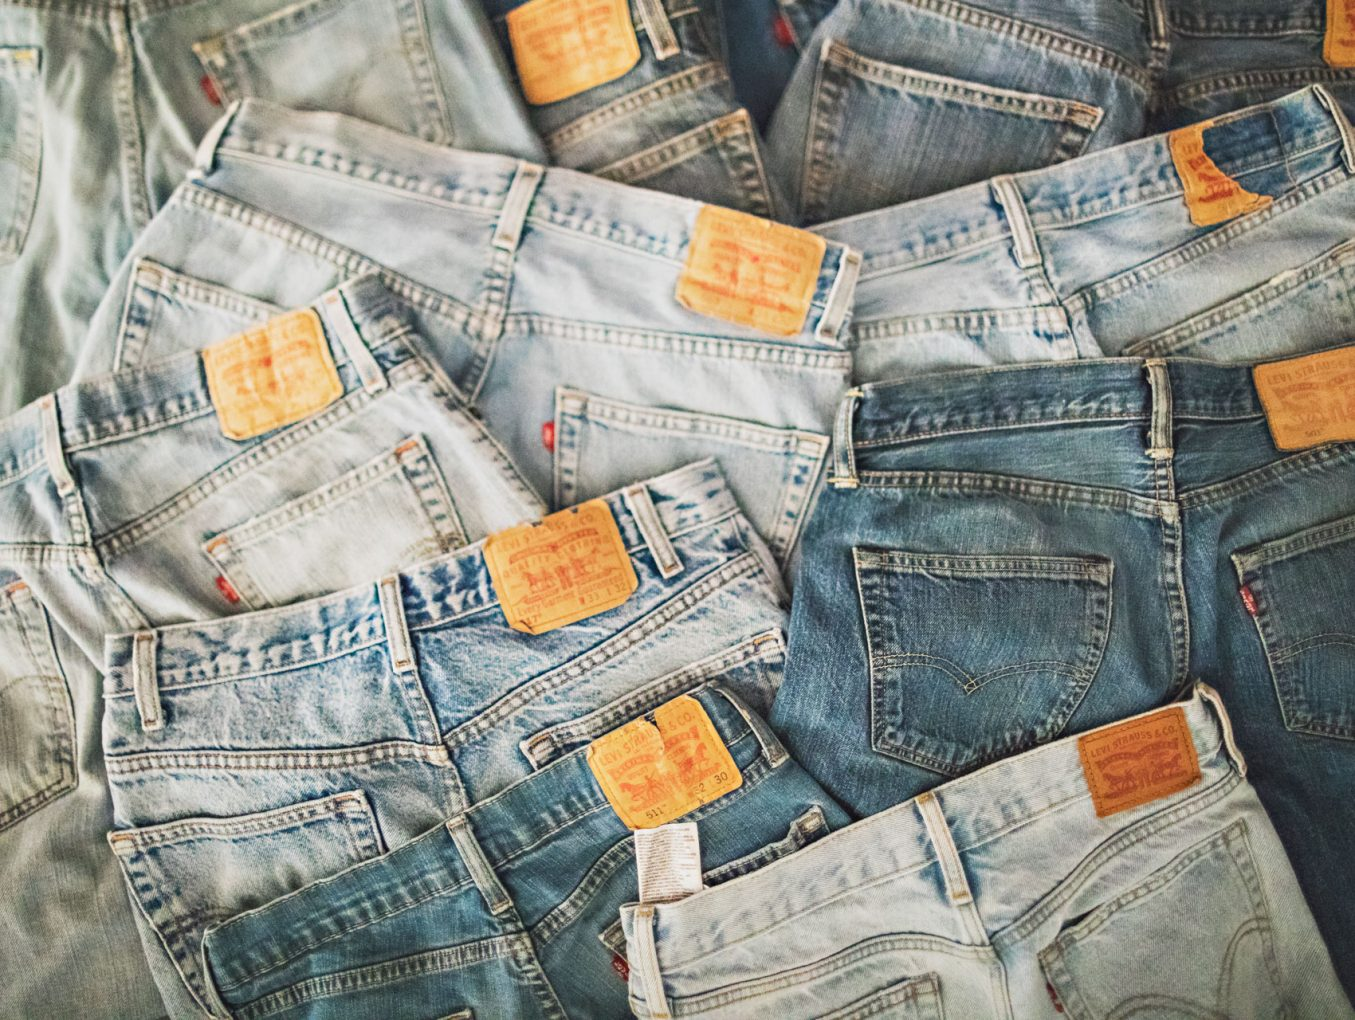 Finding the Right Jeans | Vintage Levi's Fit Guide